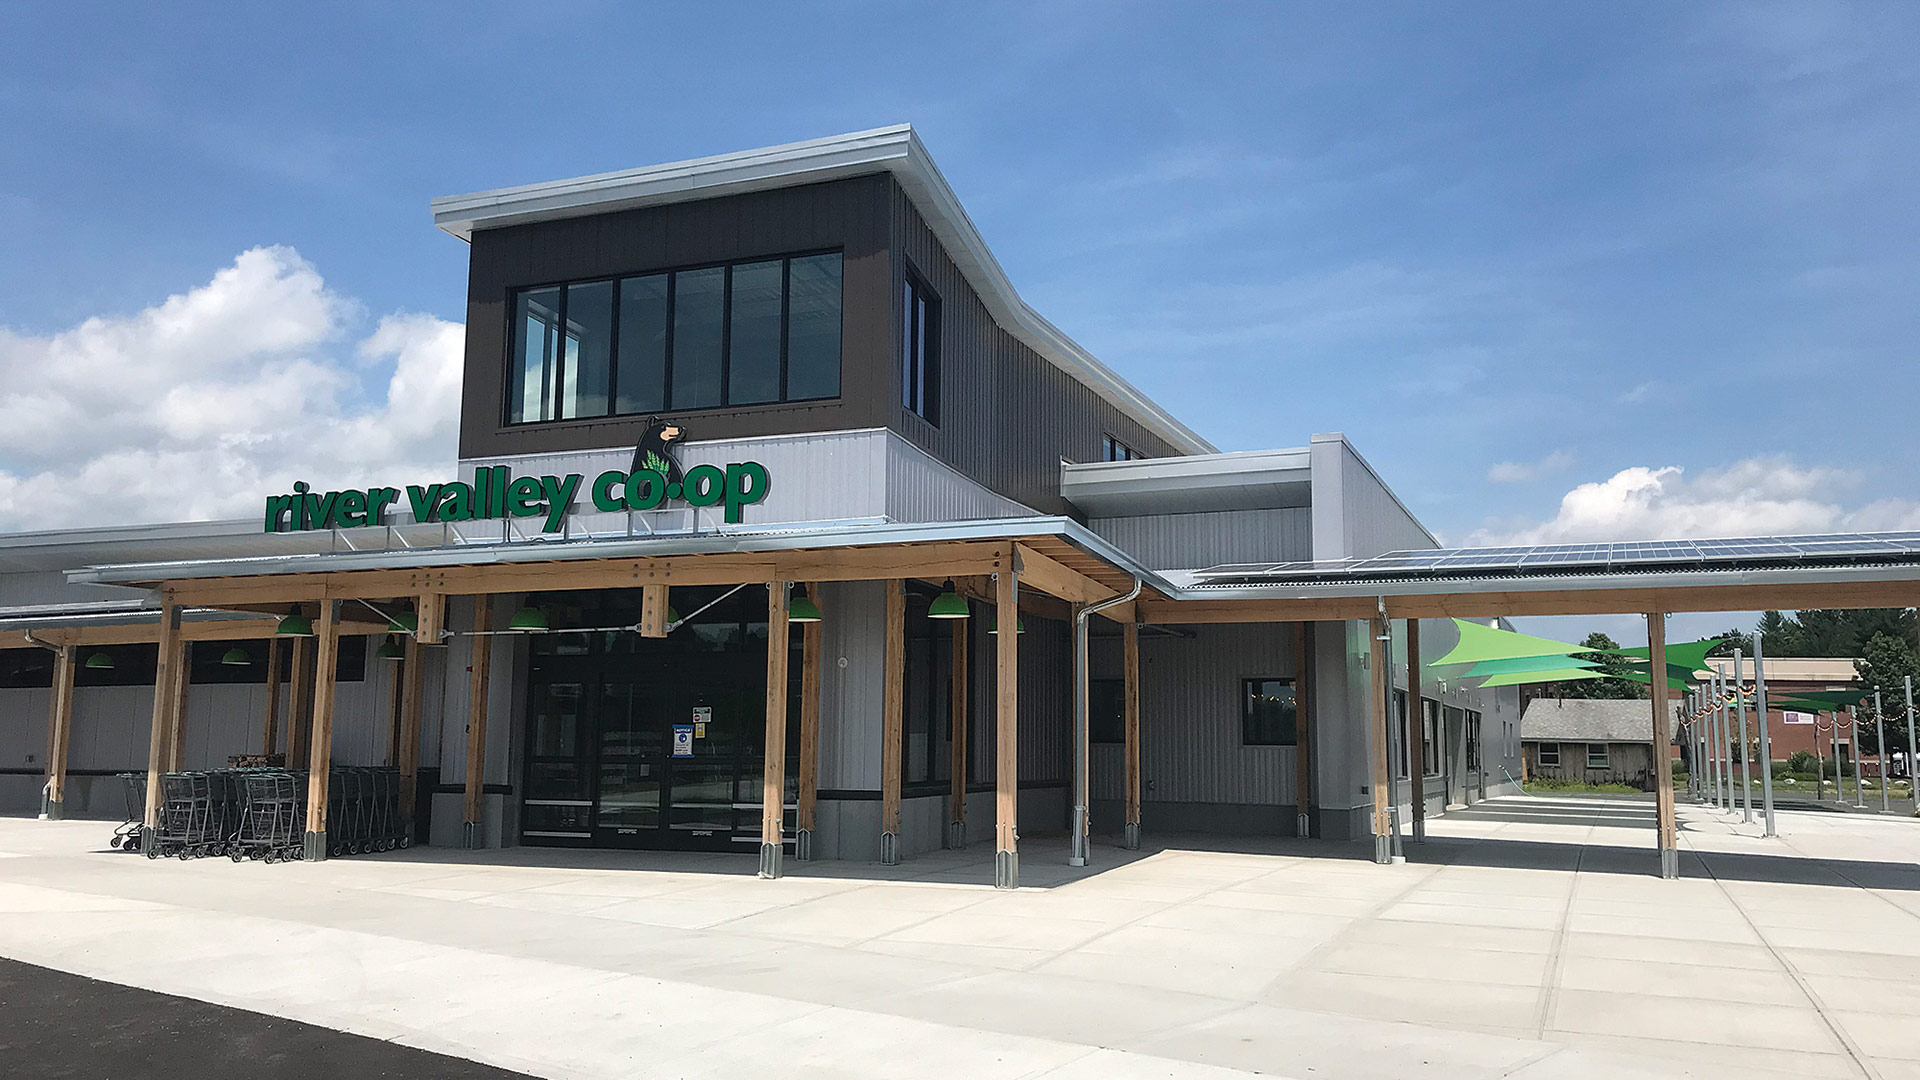 River Valley Co-op, a full-service supermarket